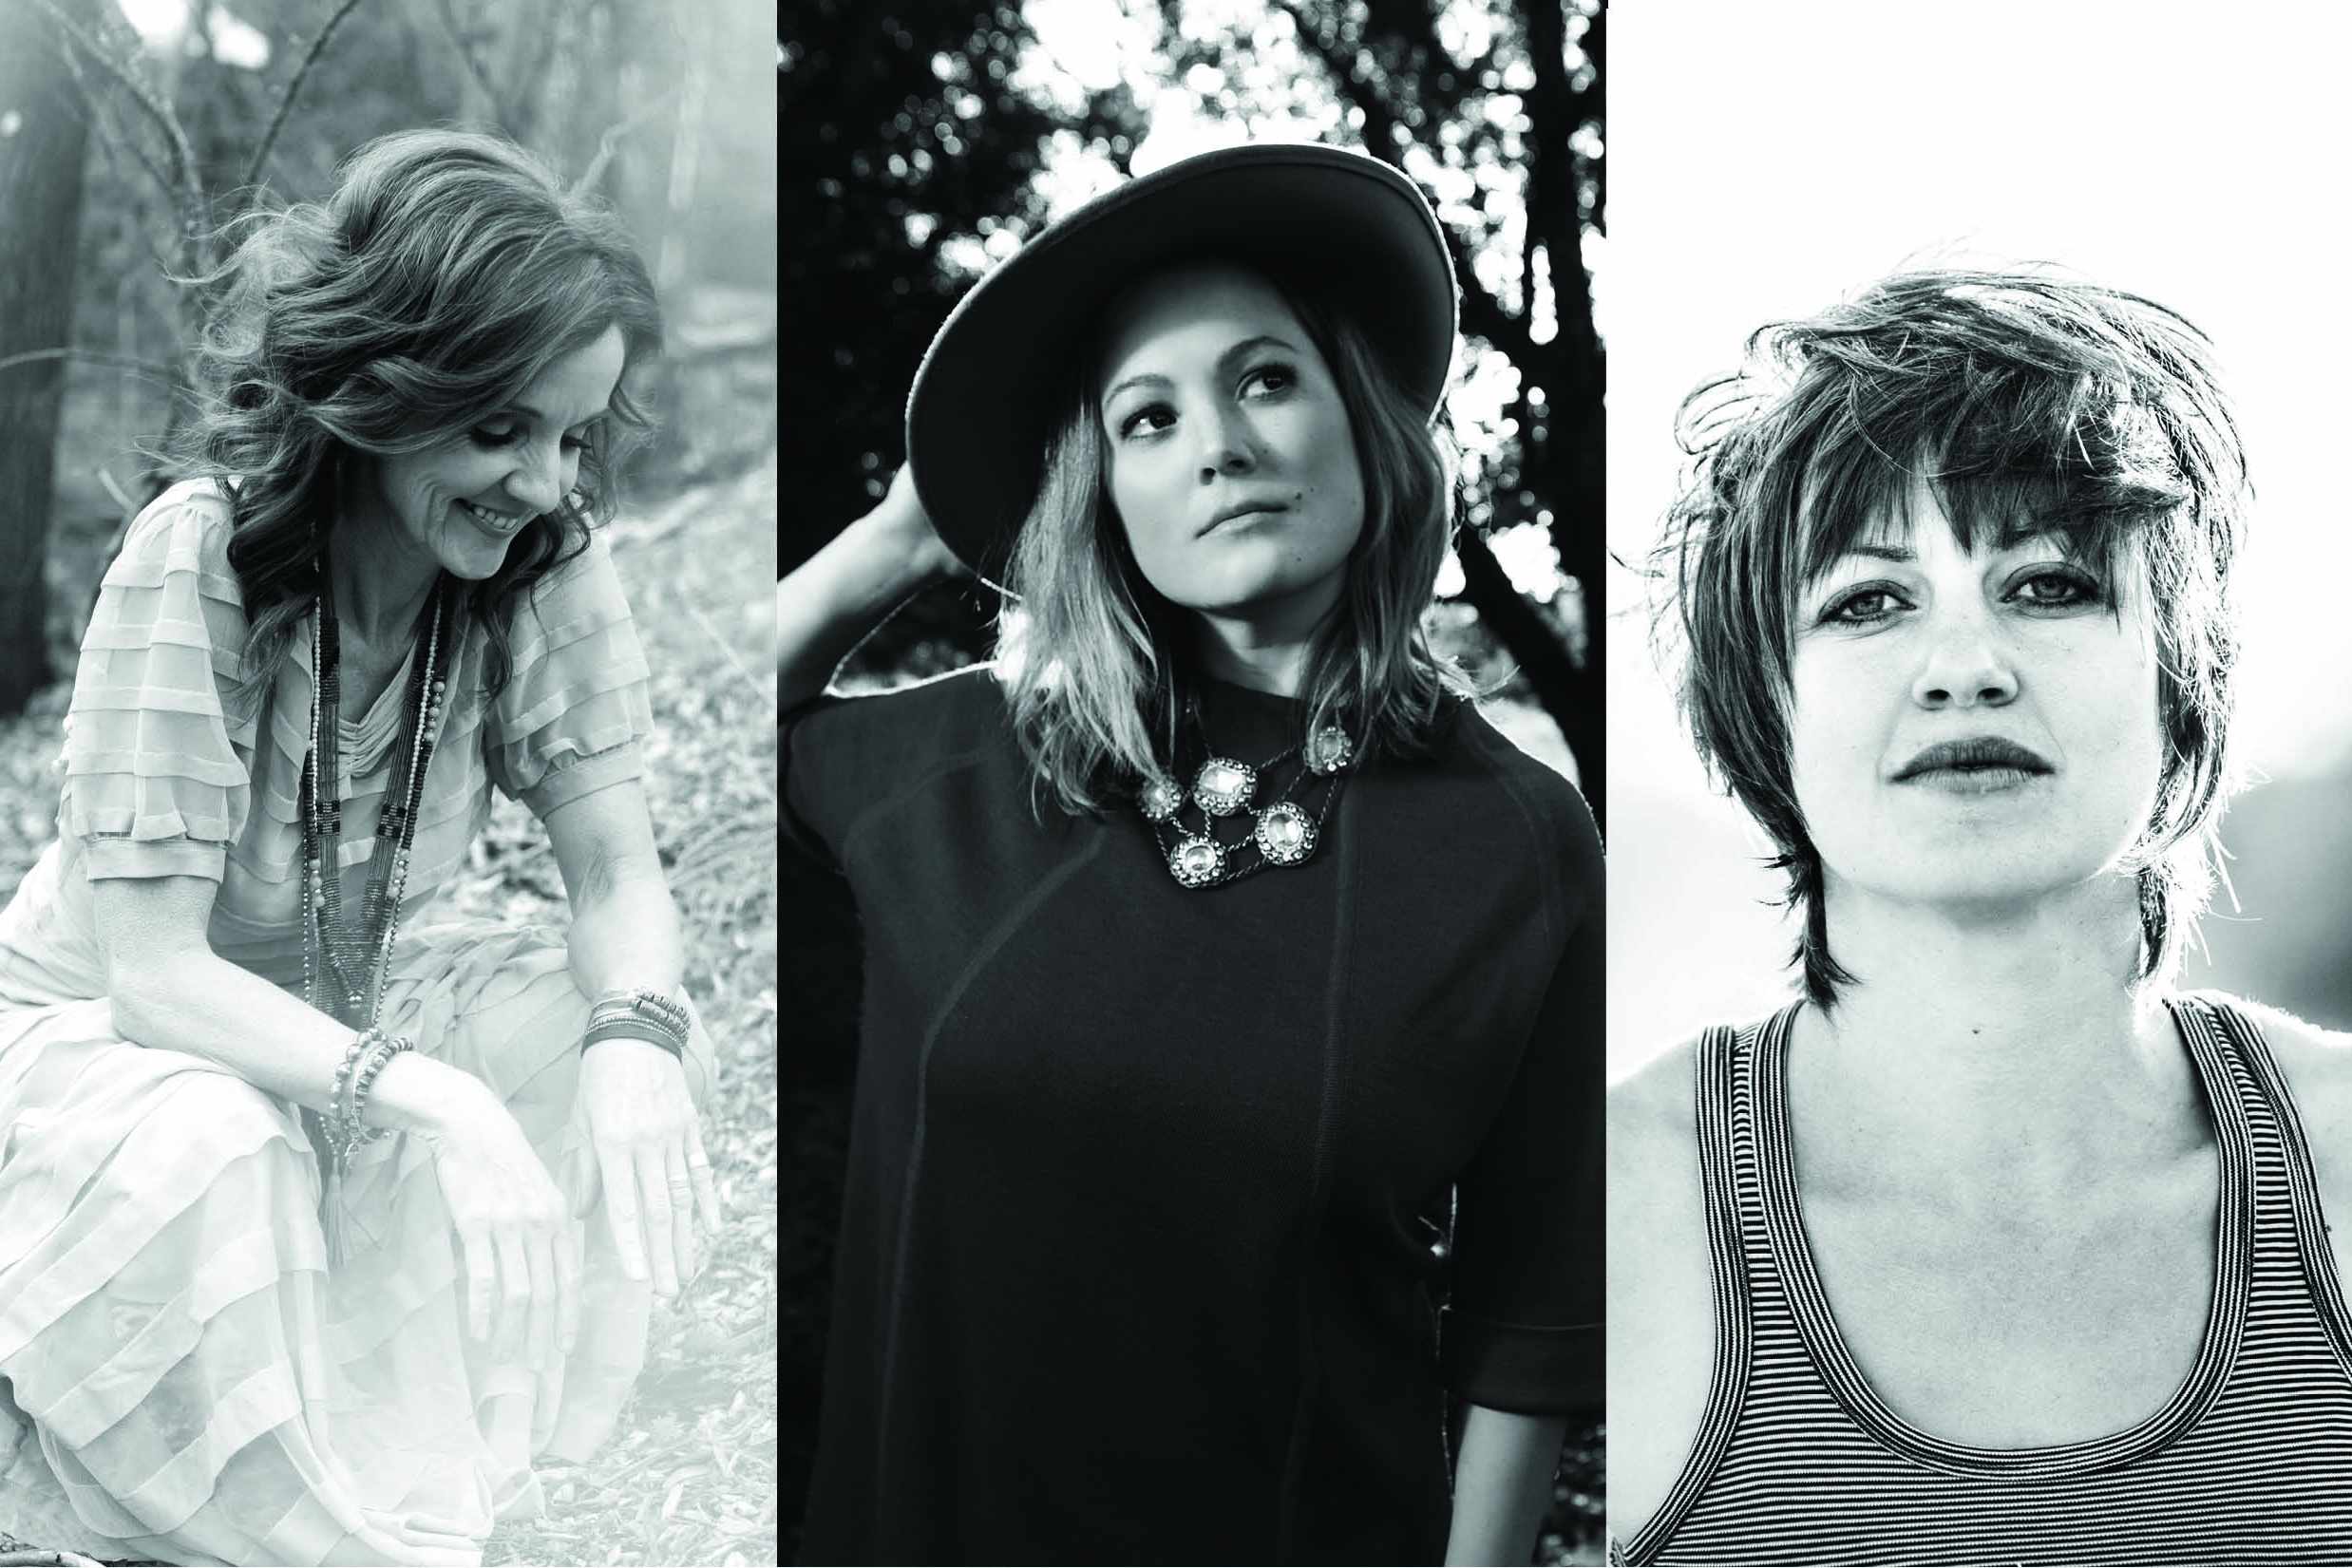 Singer-songwriters from left, Patty Griffin, Sara Watkins, and Anais Mitchell will perform as part of 'The Use Your Voice Tour 2016' at Jorgensen Center for the Performing Arts on Saturday, March 5.